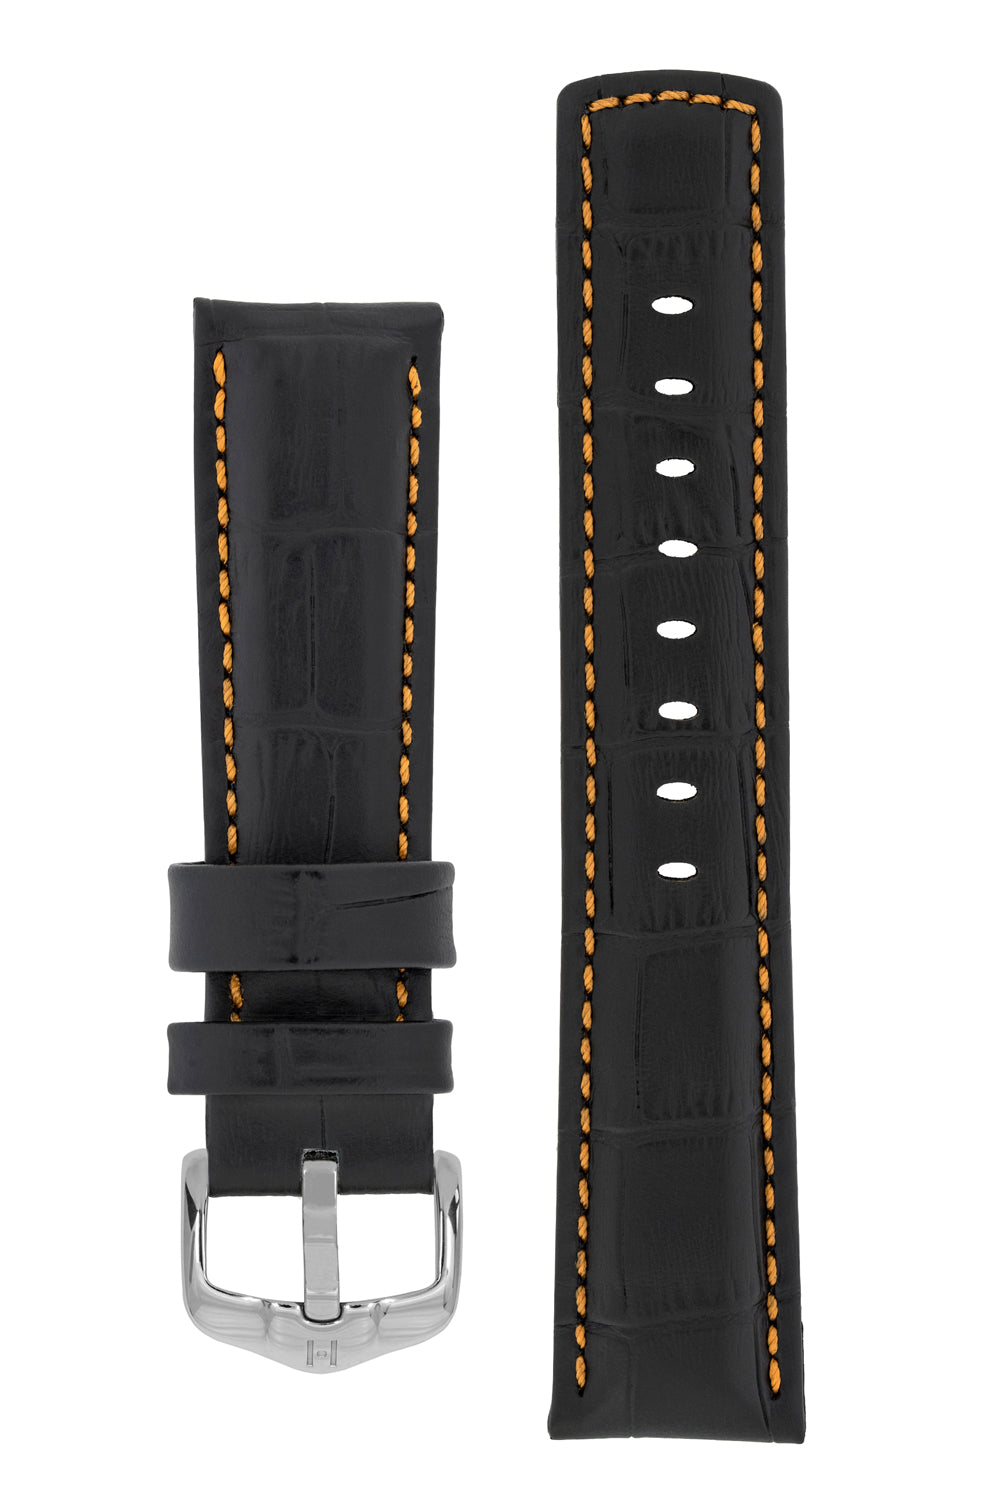 Hirsch GRAND DUKE Water-Resistant Alligator Embossed Sport Watch Strap in BLACK/ORANGE